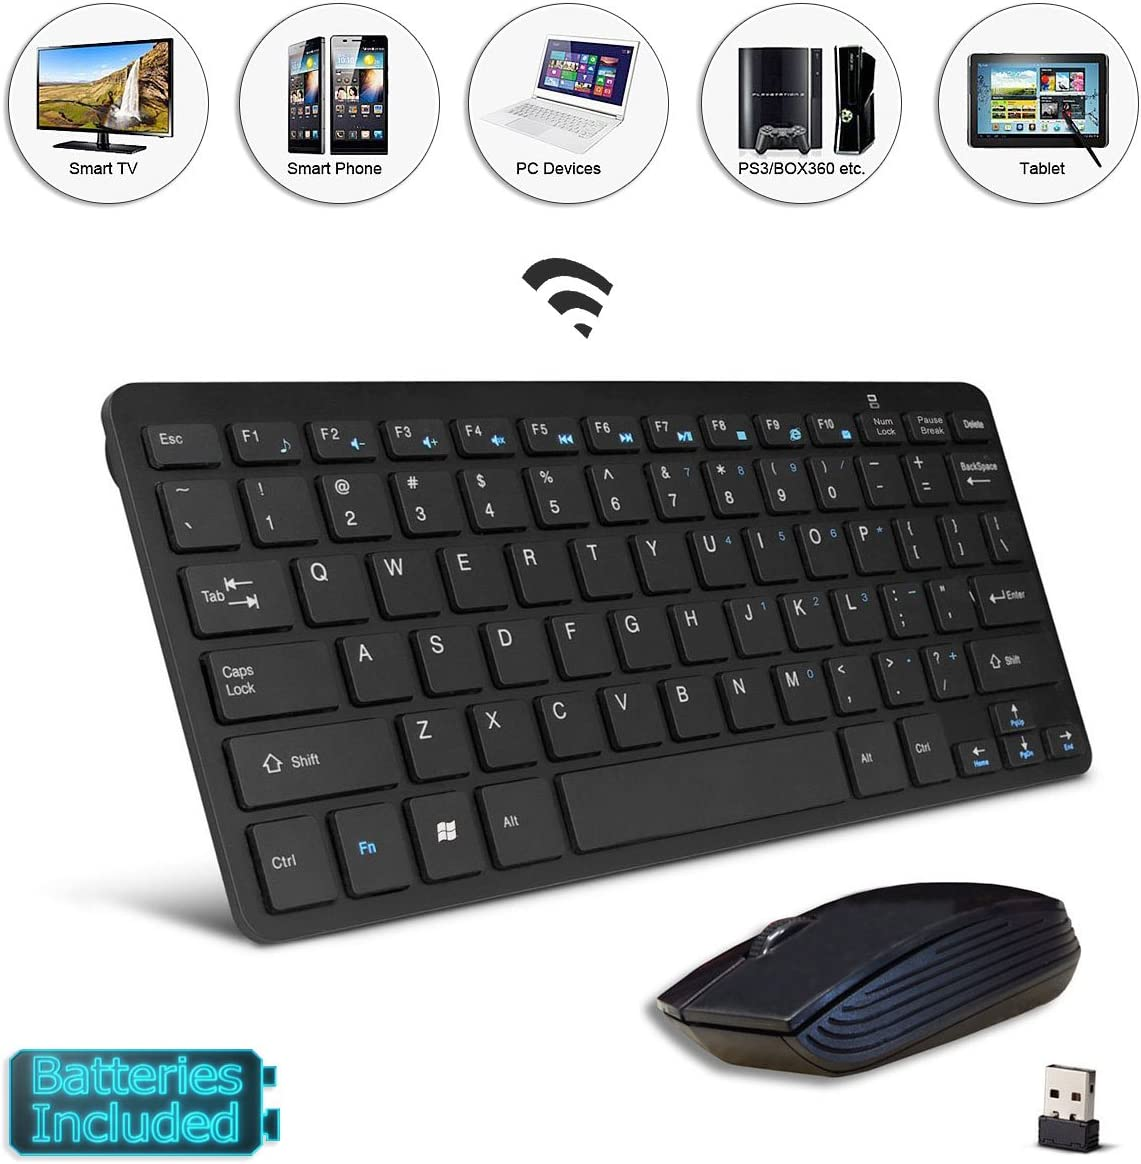 Black Wireless Mini Ultra Slim Keyboard and Mouse For Easy Smart TV Contol for Samsung UE40ES6800UXXU Smart TV